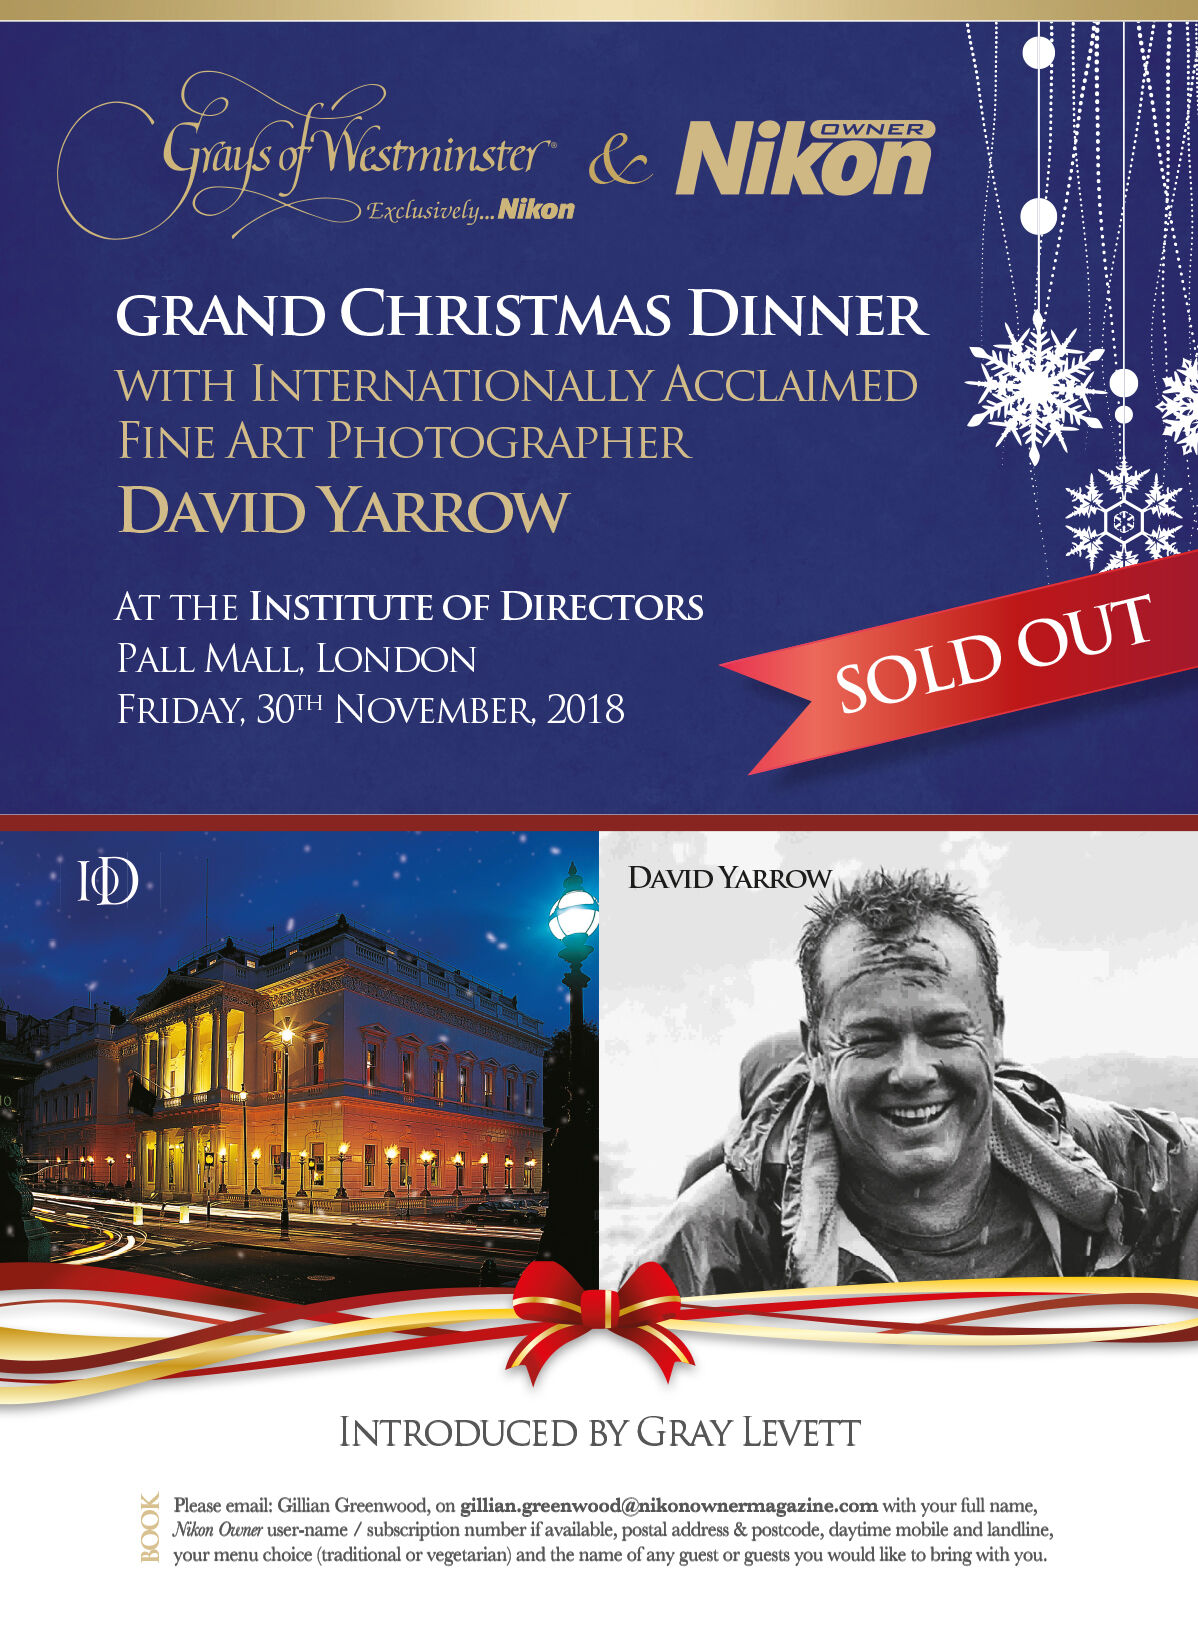 Grand Christmas Dinner with Internationally Acclaimed Fine Art Photographer David Yarrow